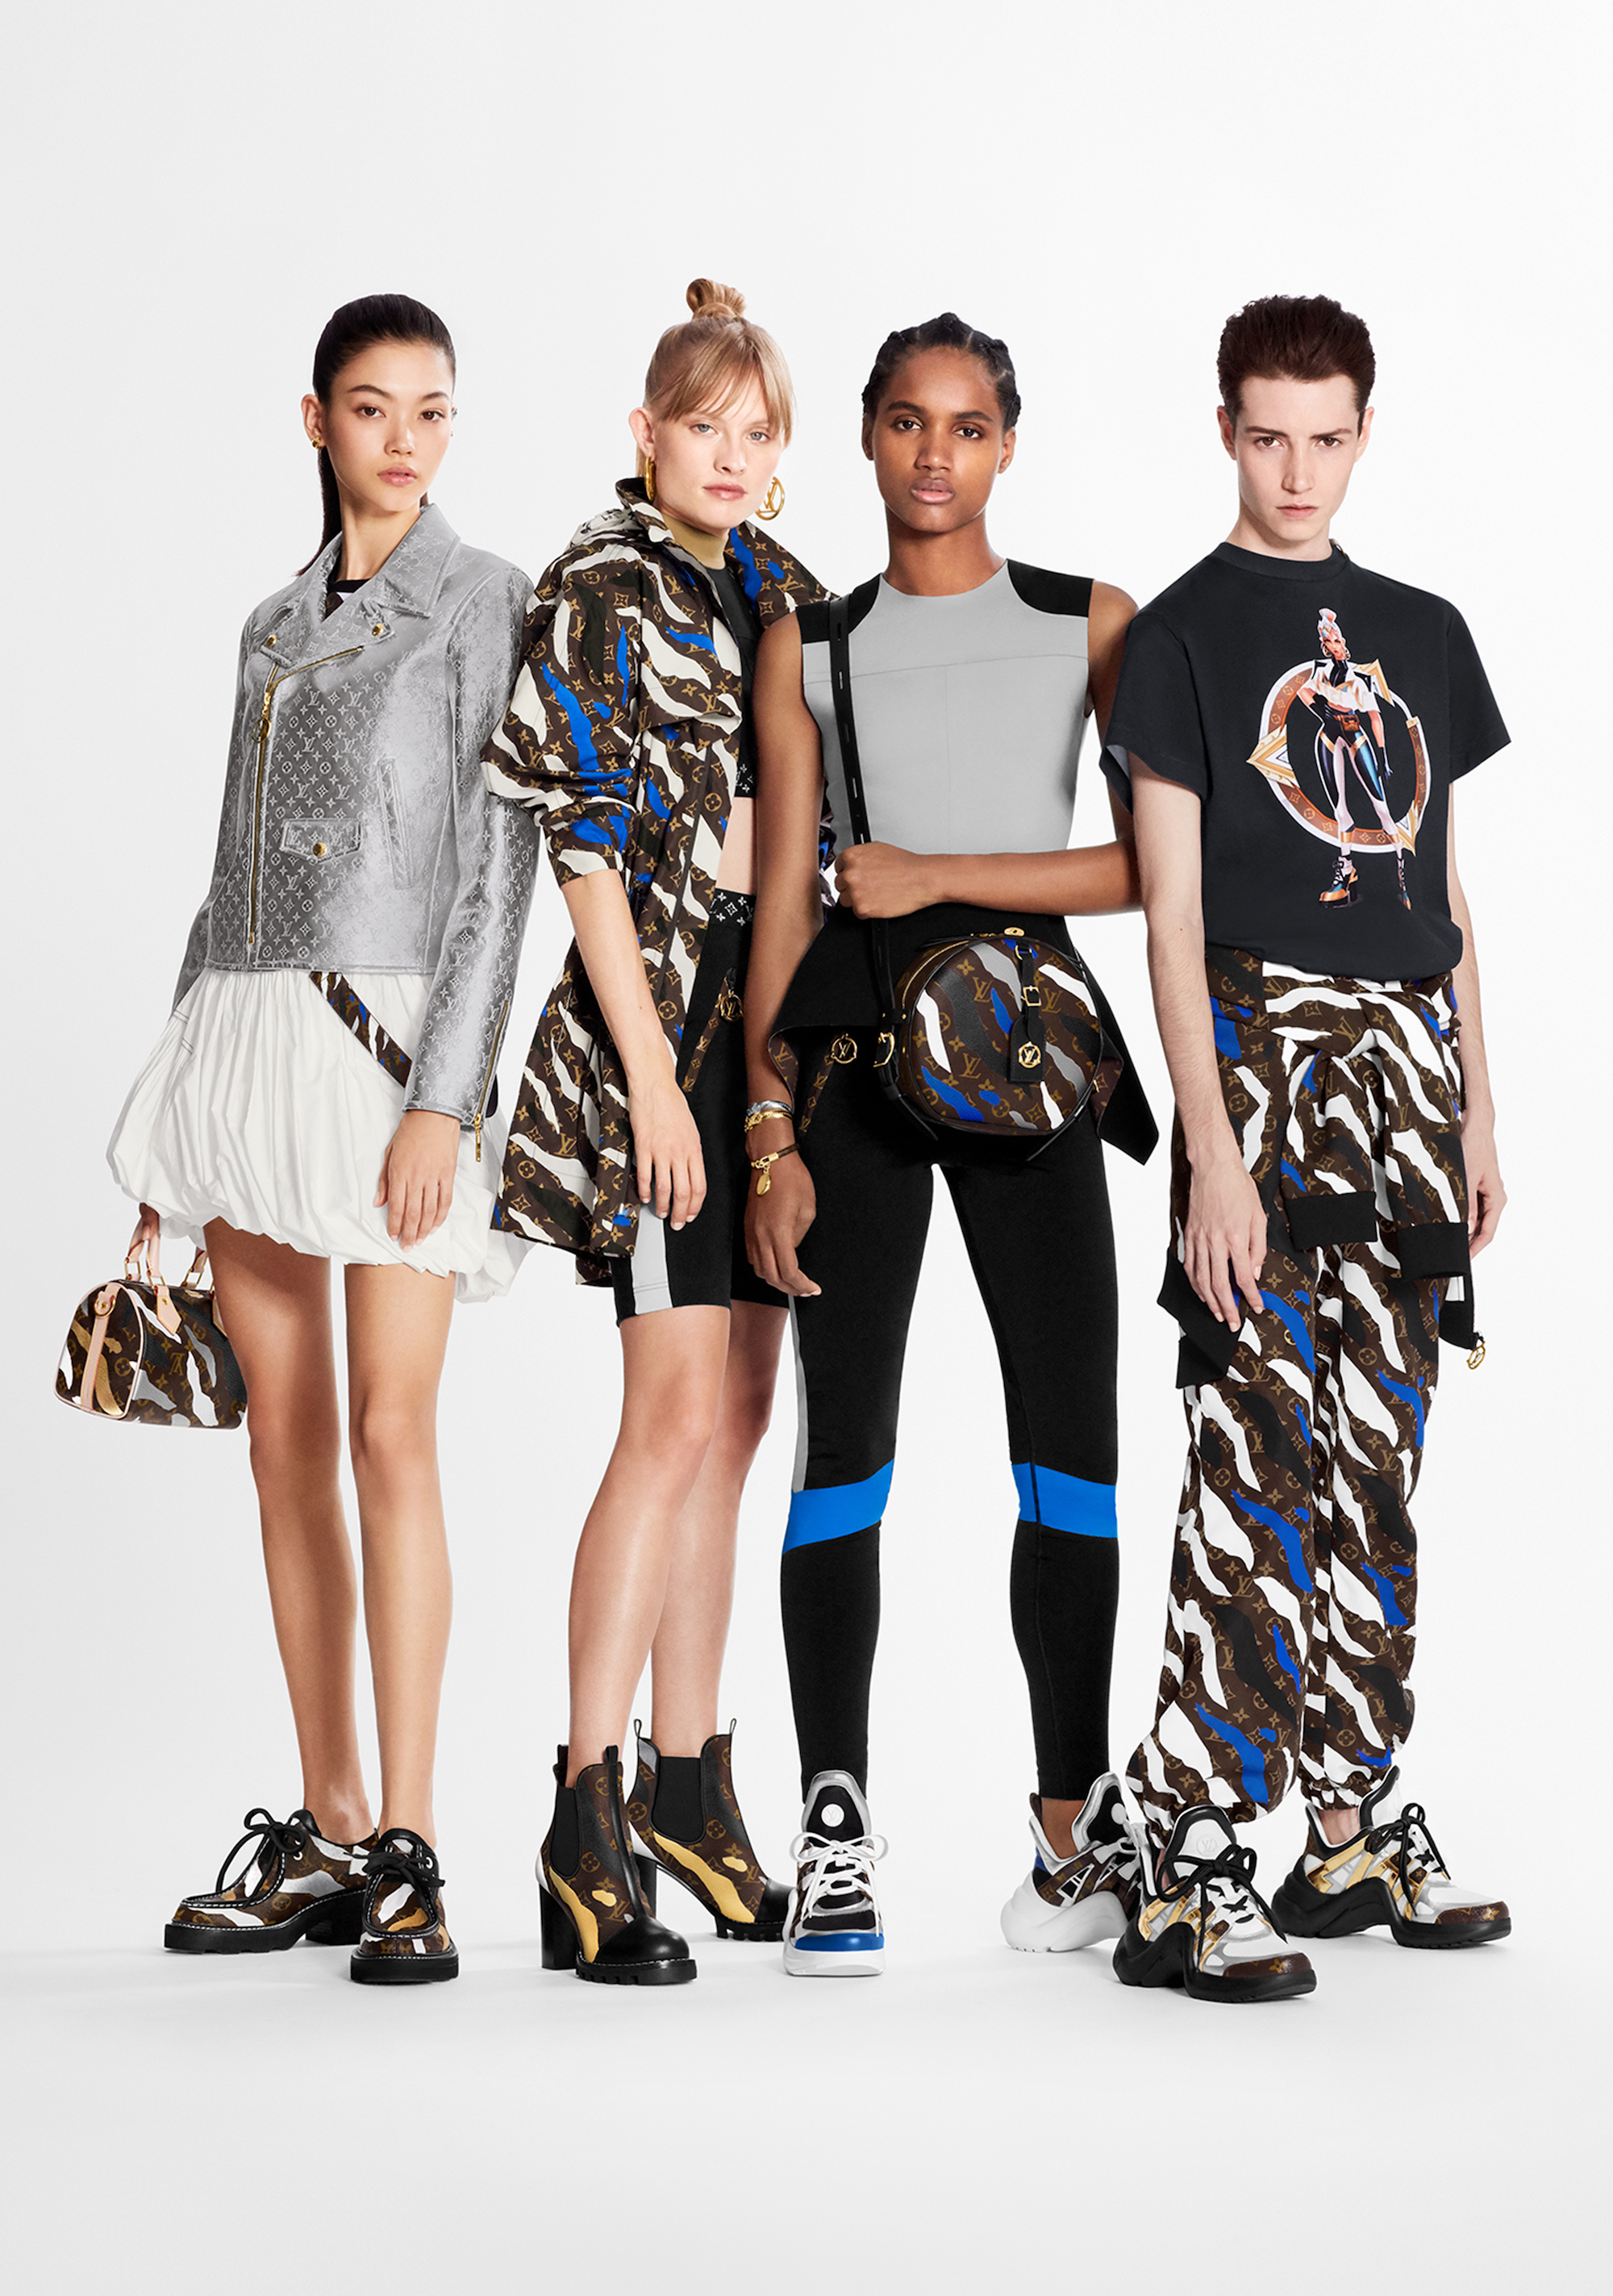 Louis Vuitton x League of Legends capsule collection group shot